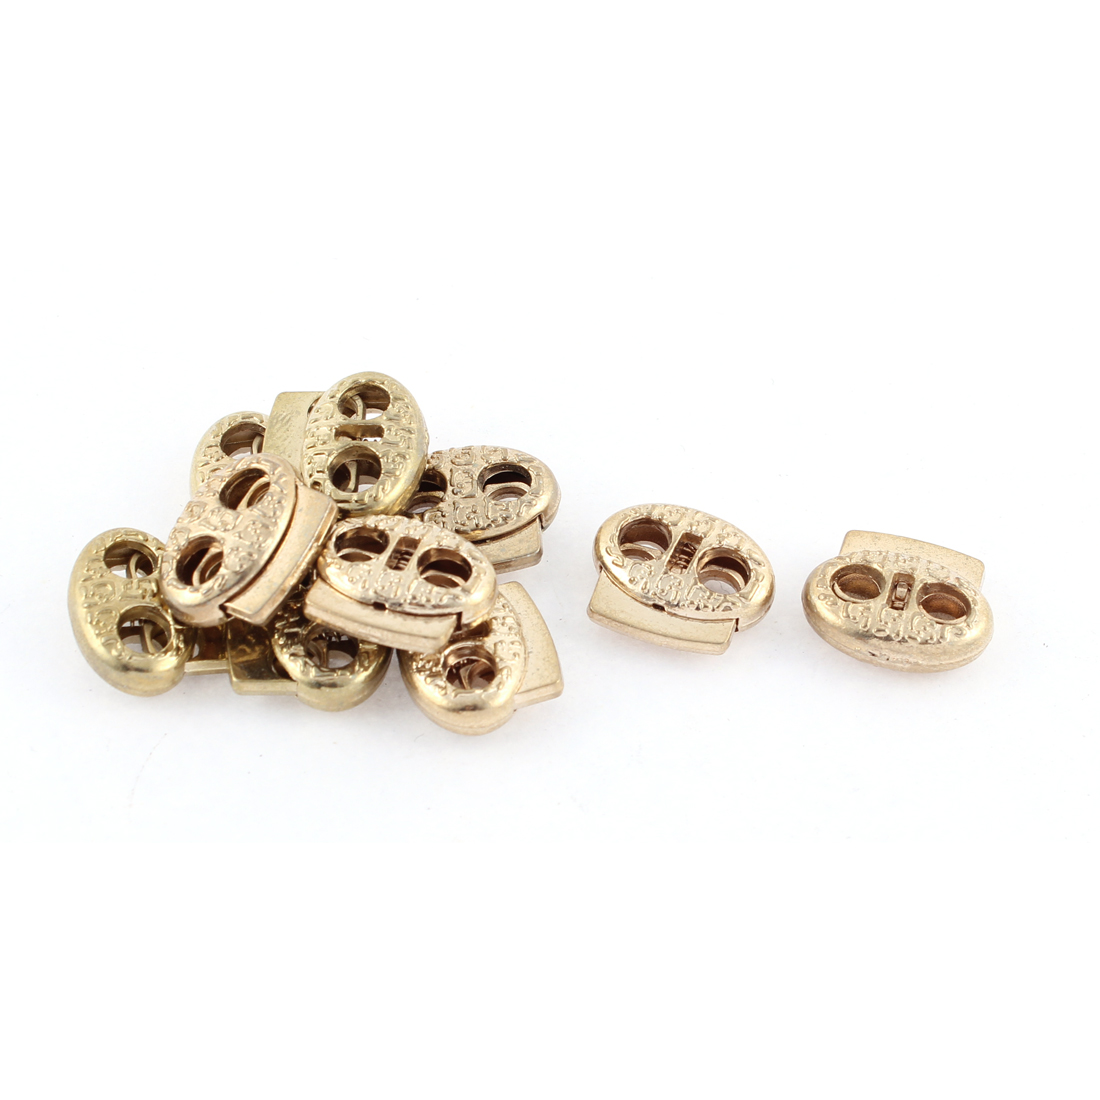 Metal Double Holes Oval Bean Toggle Spring Adjuster Fastener Cord Lock 10 Pcs Gold Tone